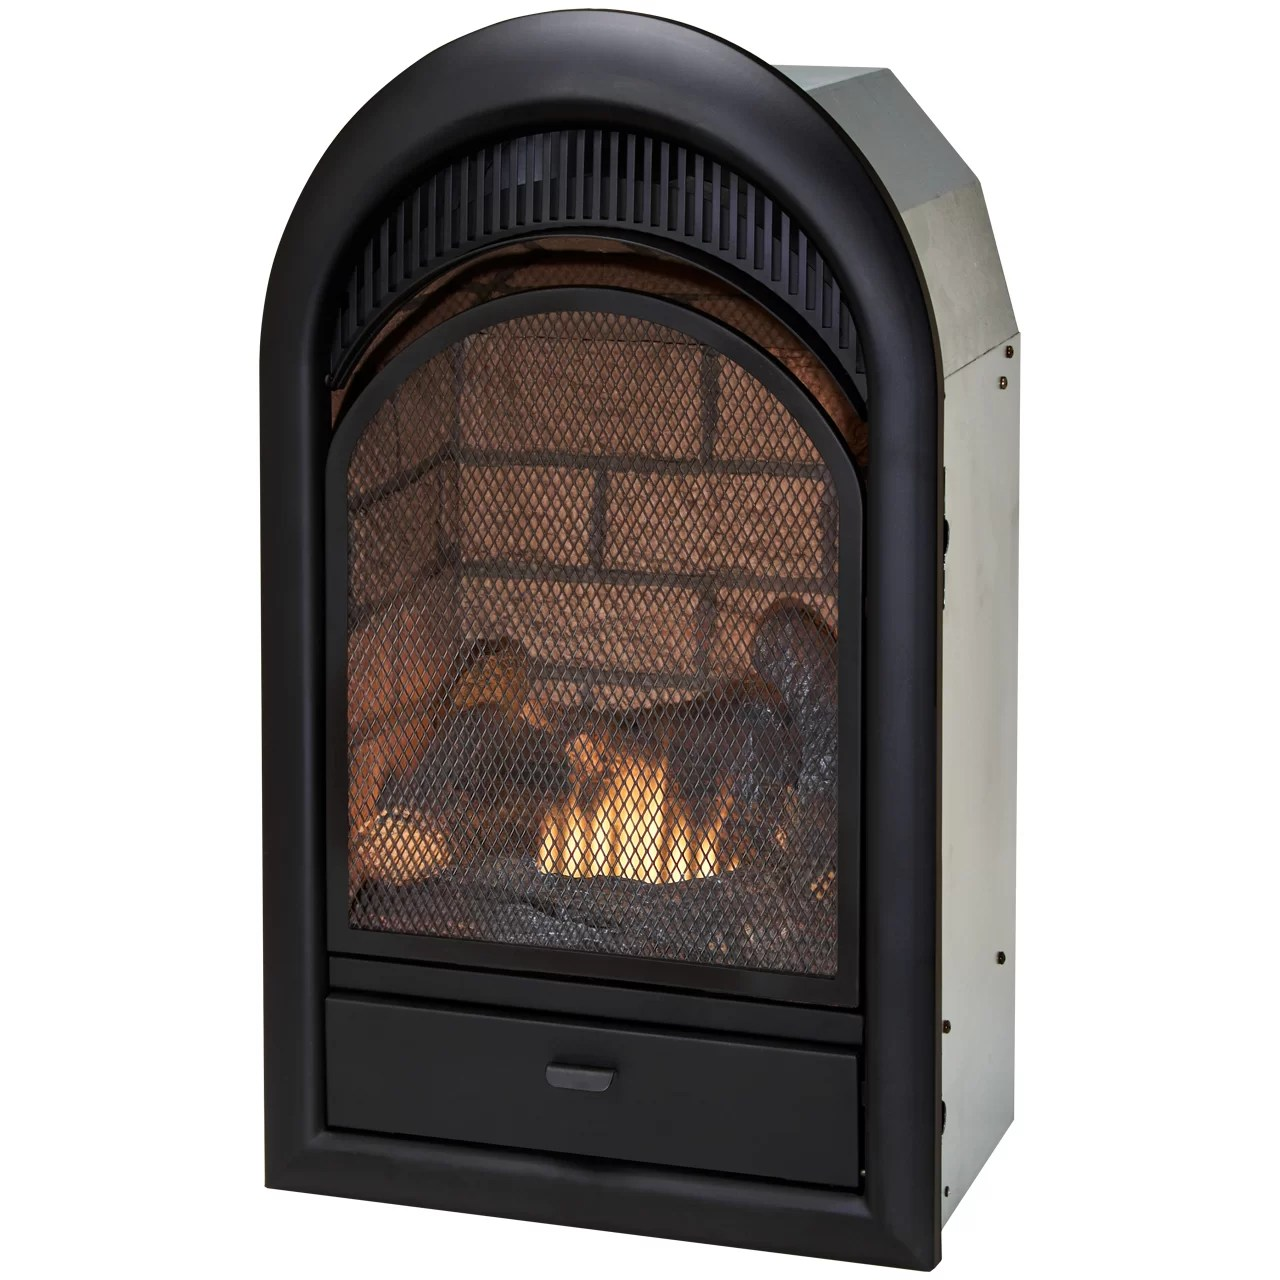 Propane Fireplace Inserts Vent Free Natural Gas Propane Fireplace Insert